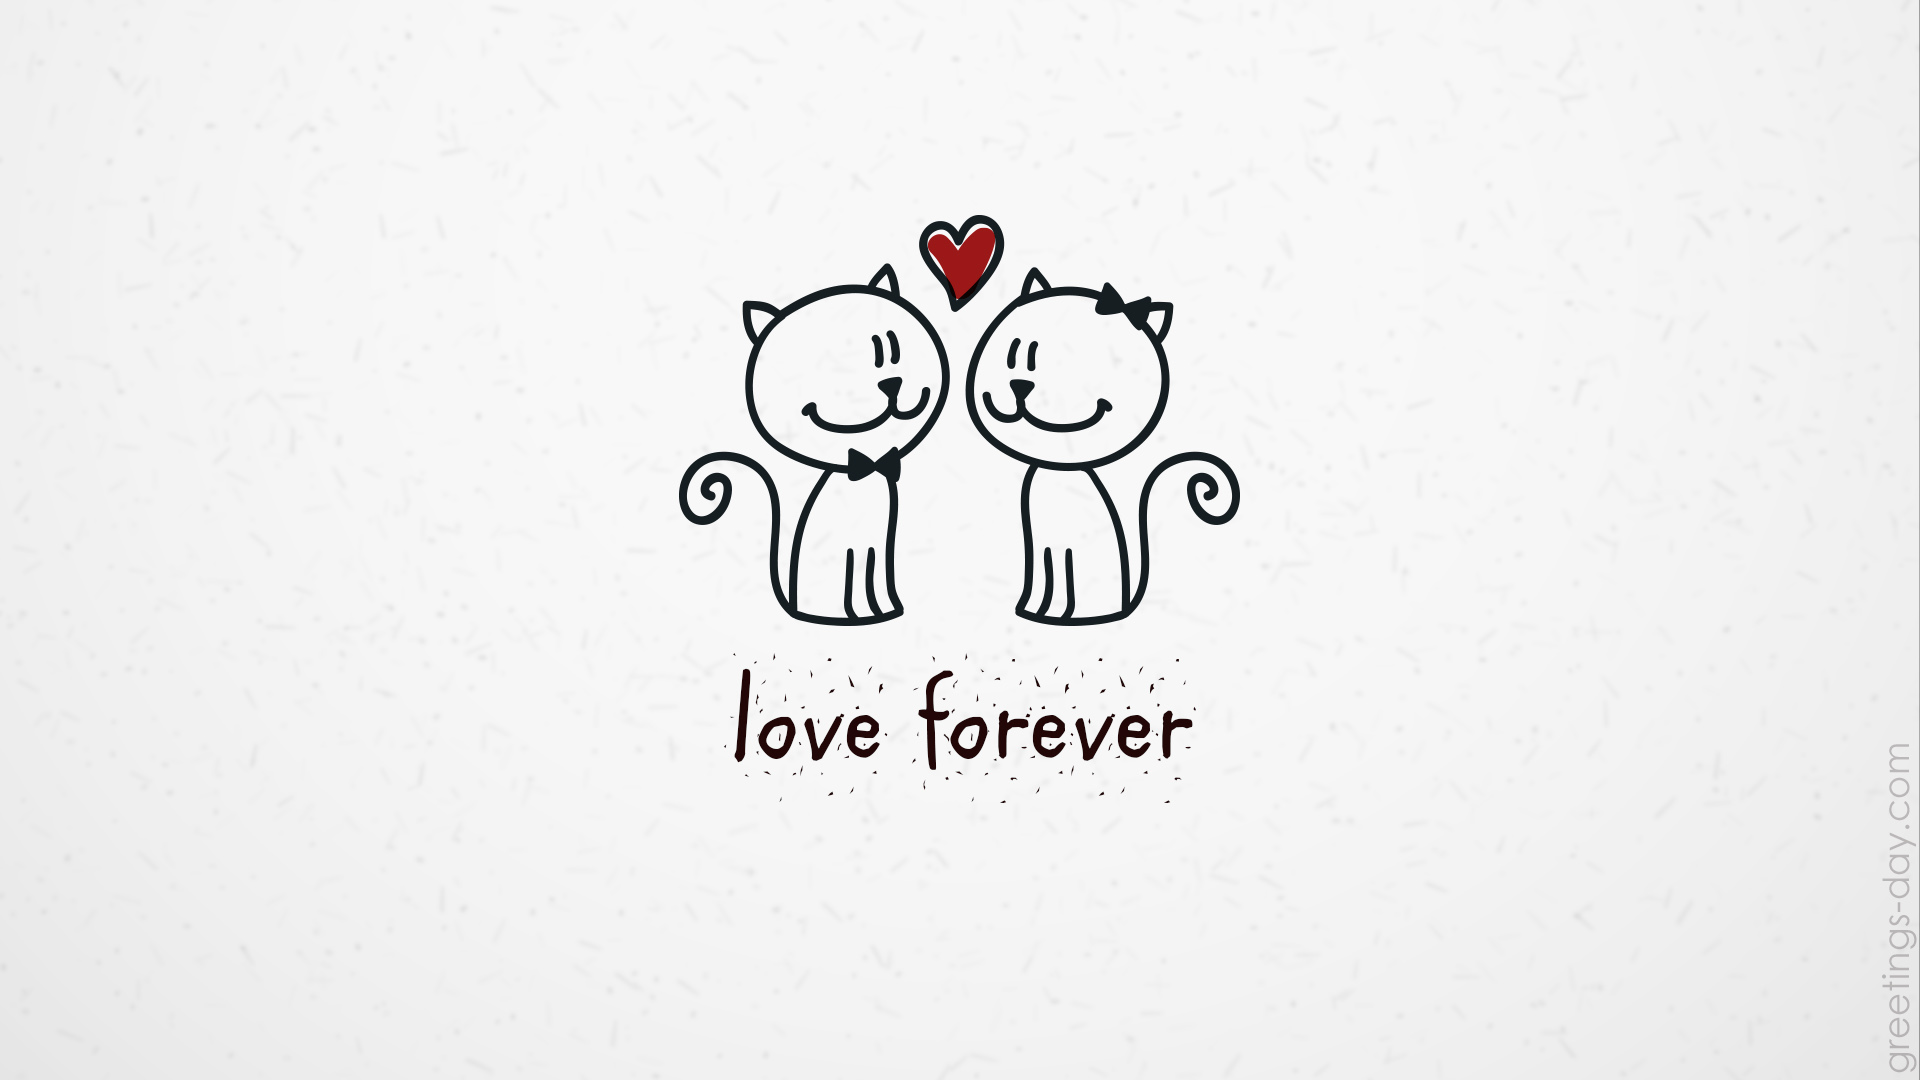 Love Quotes For Friends Funny Valentine's Day Quotes For Friends ❤ Love Funny Ecard.